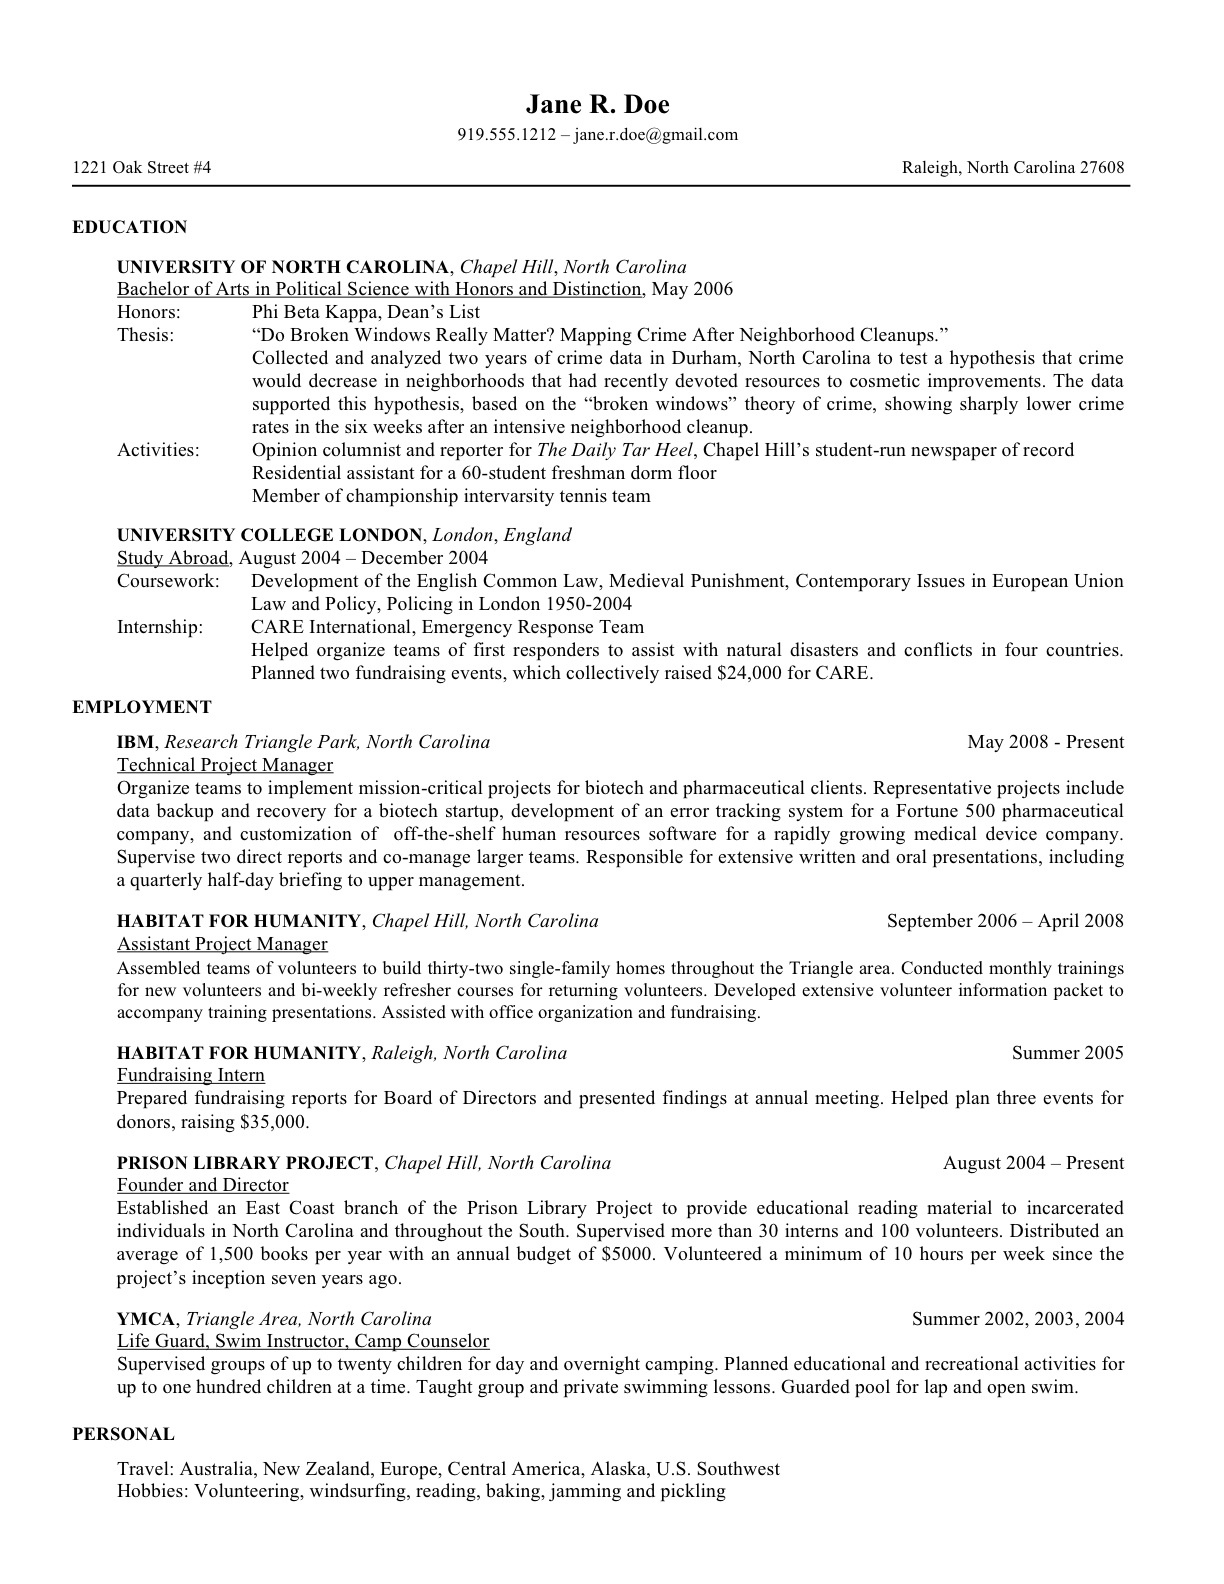 law school resume templates prepping your for of university at sample work abroad phrases Resume Resume Sample For Work Abroad